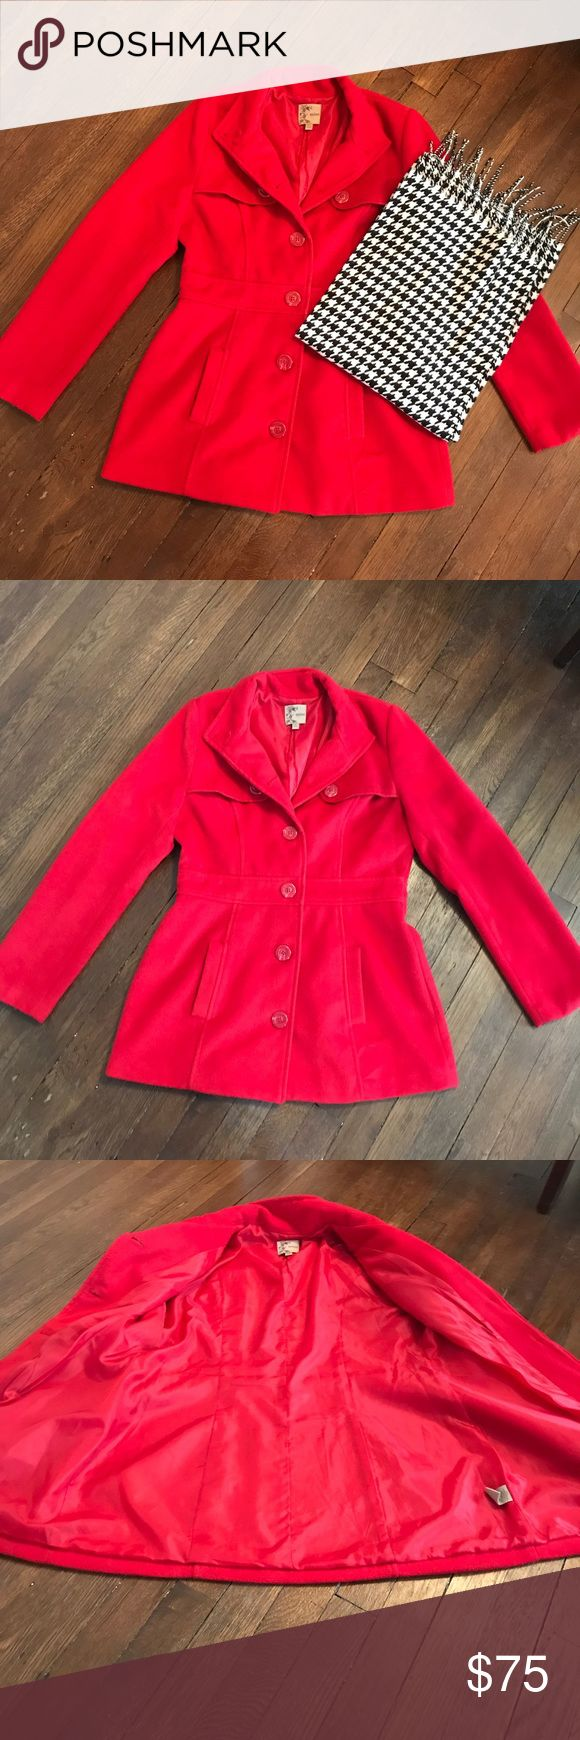 Red Pea Coat Beautiful and soft red pea coat. Single buttons up the center. No signs of wear. mine Jackets & Coats Pea Coats